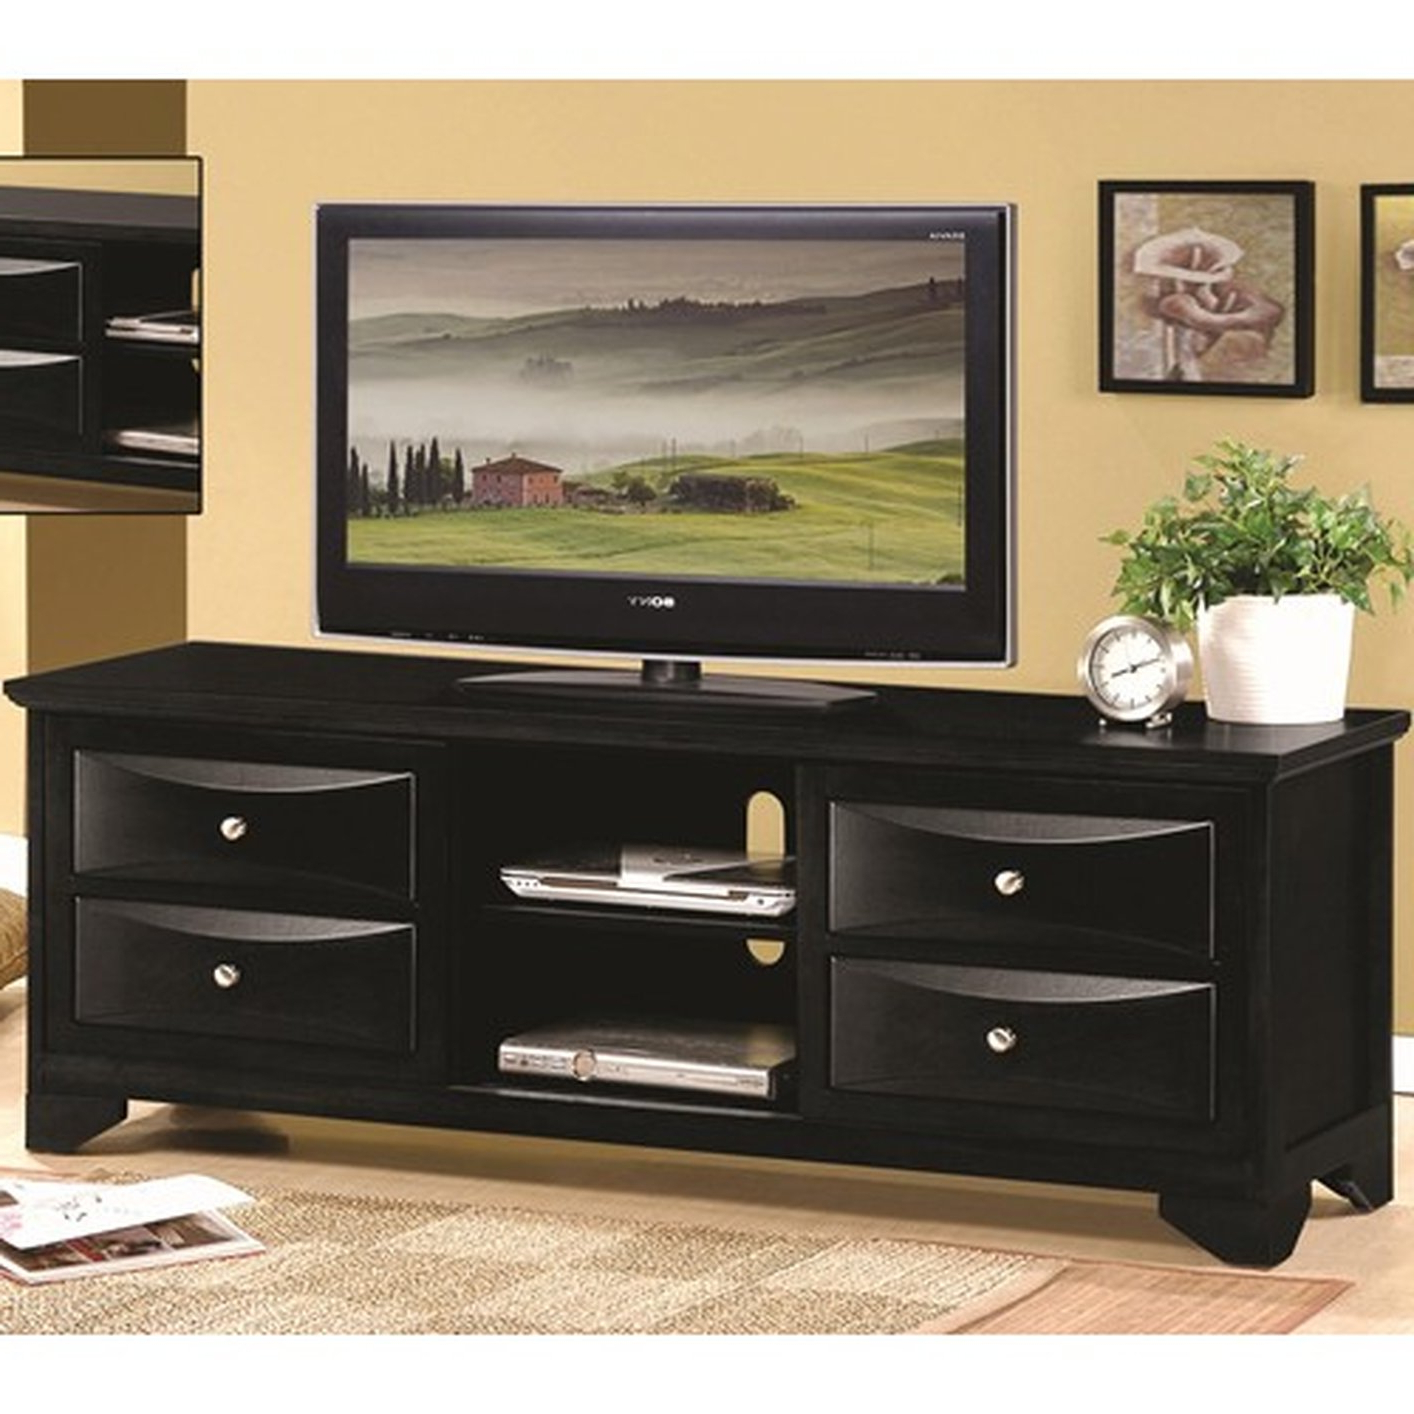 Famous Dark Wood Tv Stands Pertaining To Black Wood Tv Stand – Steal A Sofa Furniture Outlet Los Angeles Ca (View 13 of 20)